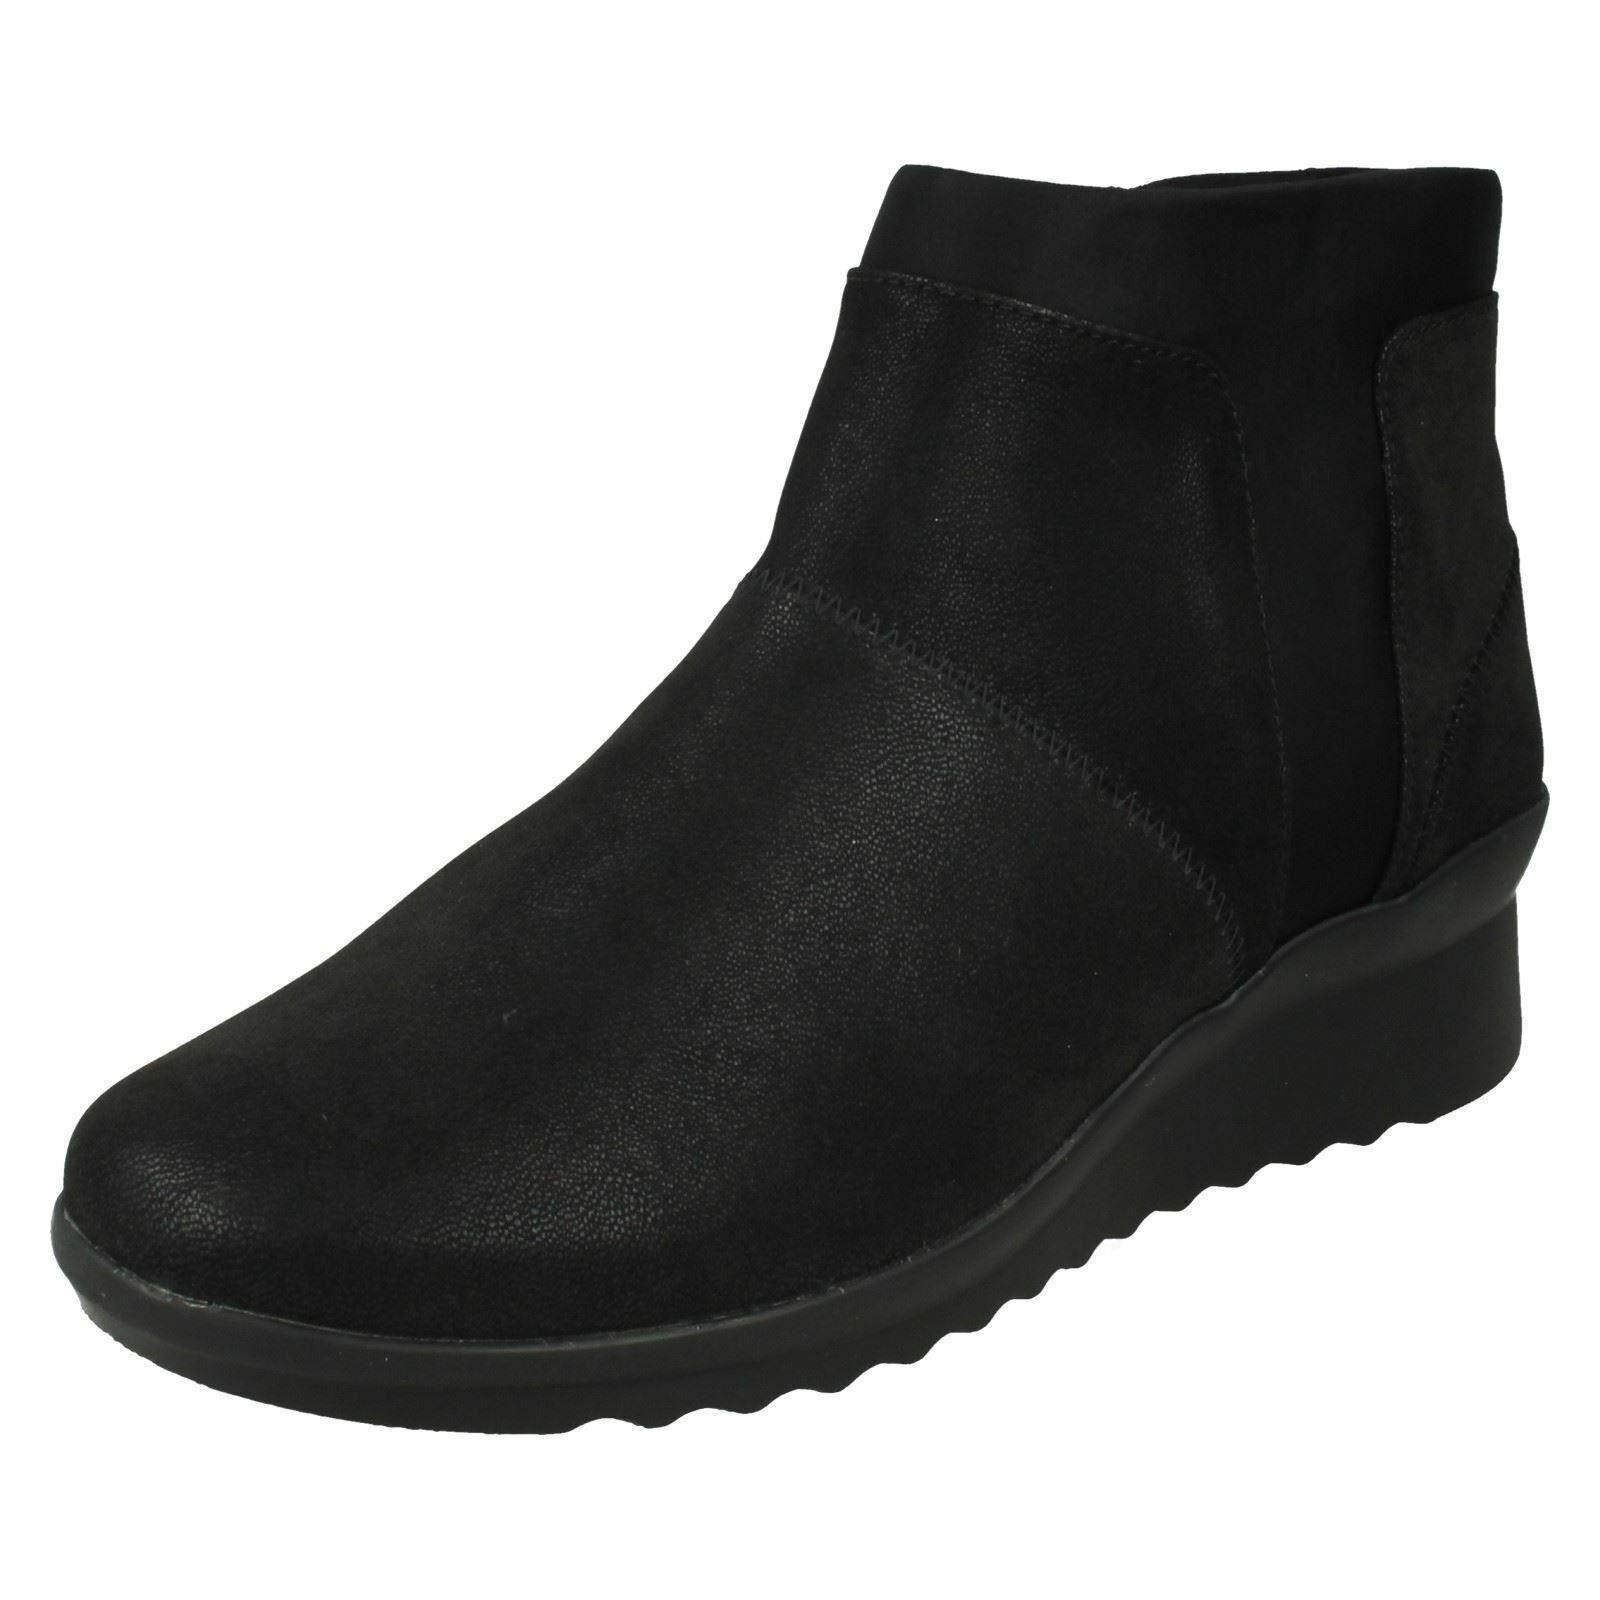 women Clarks Cloudsteppers Caddell Sloane Bottes Cheville Décontractées - - - f38f0f